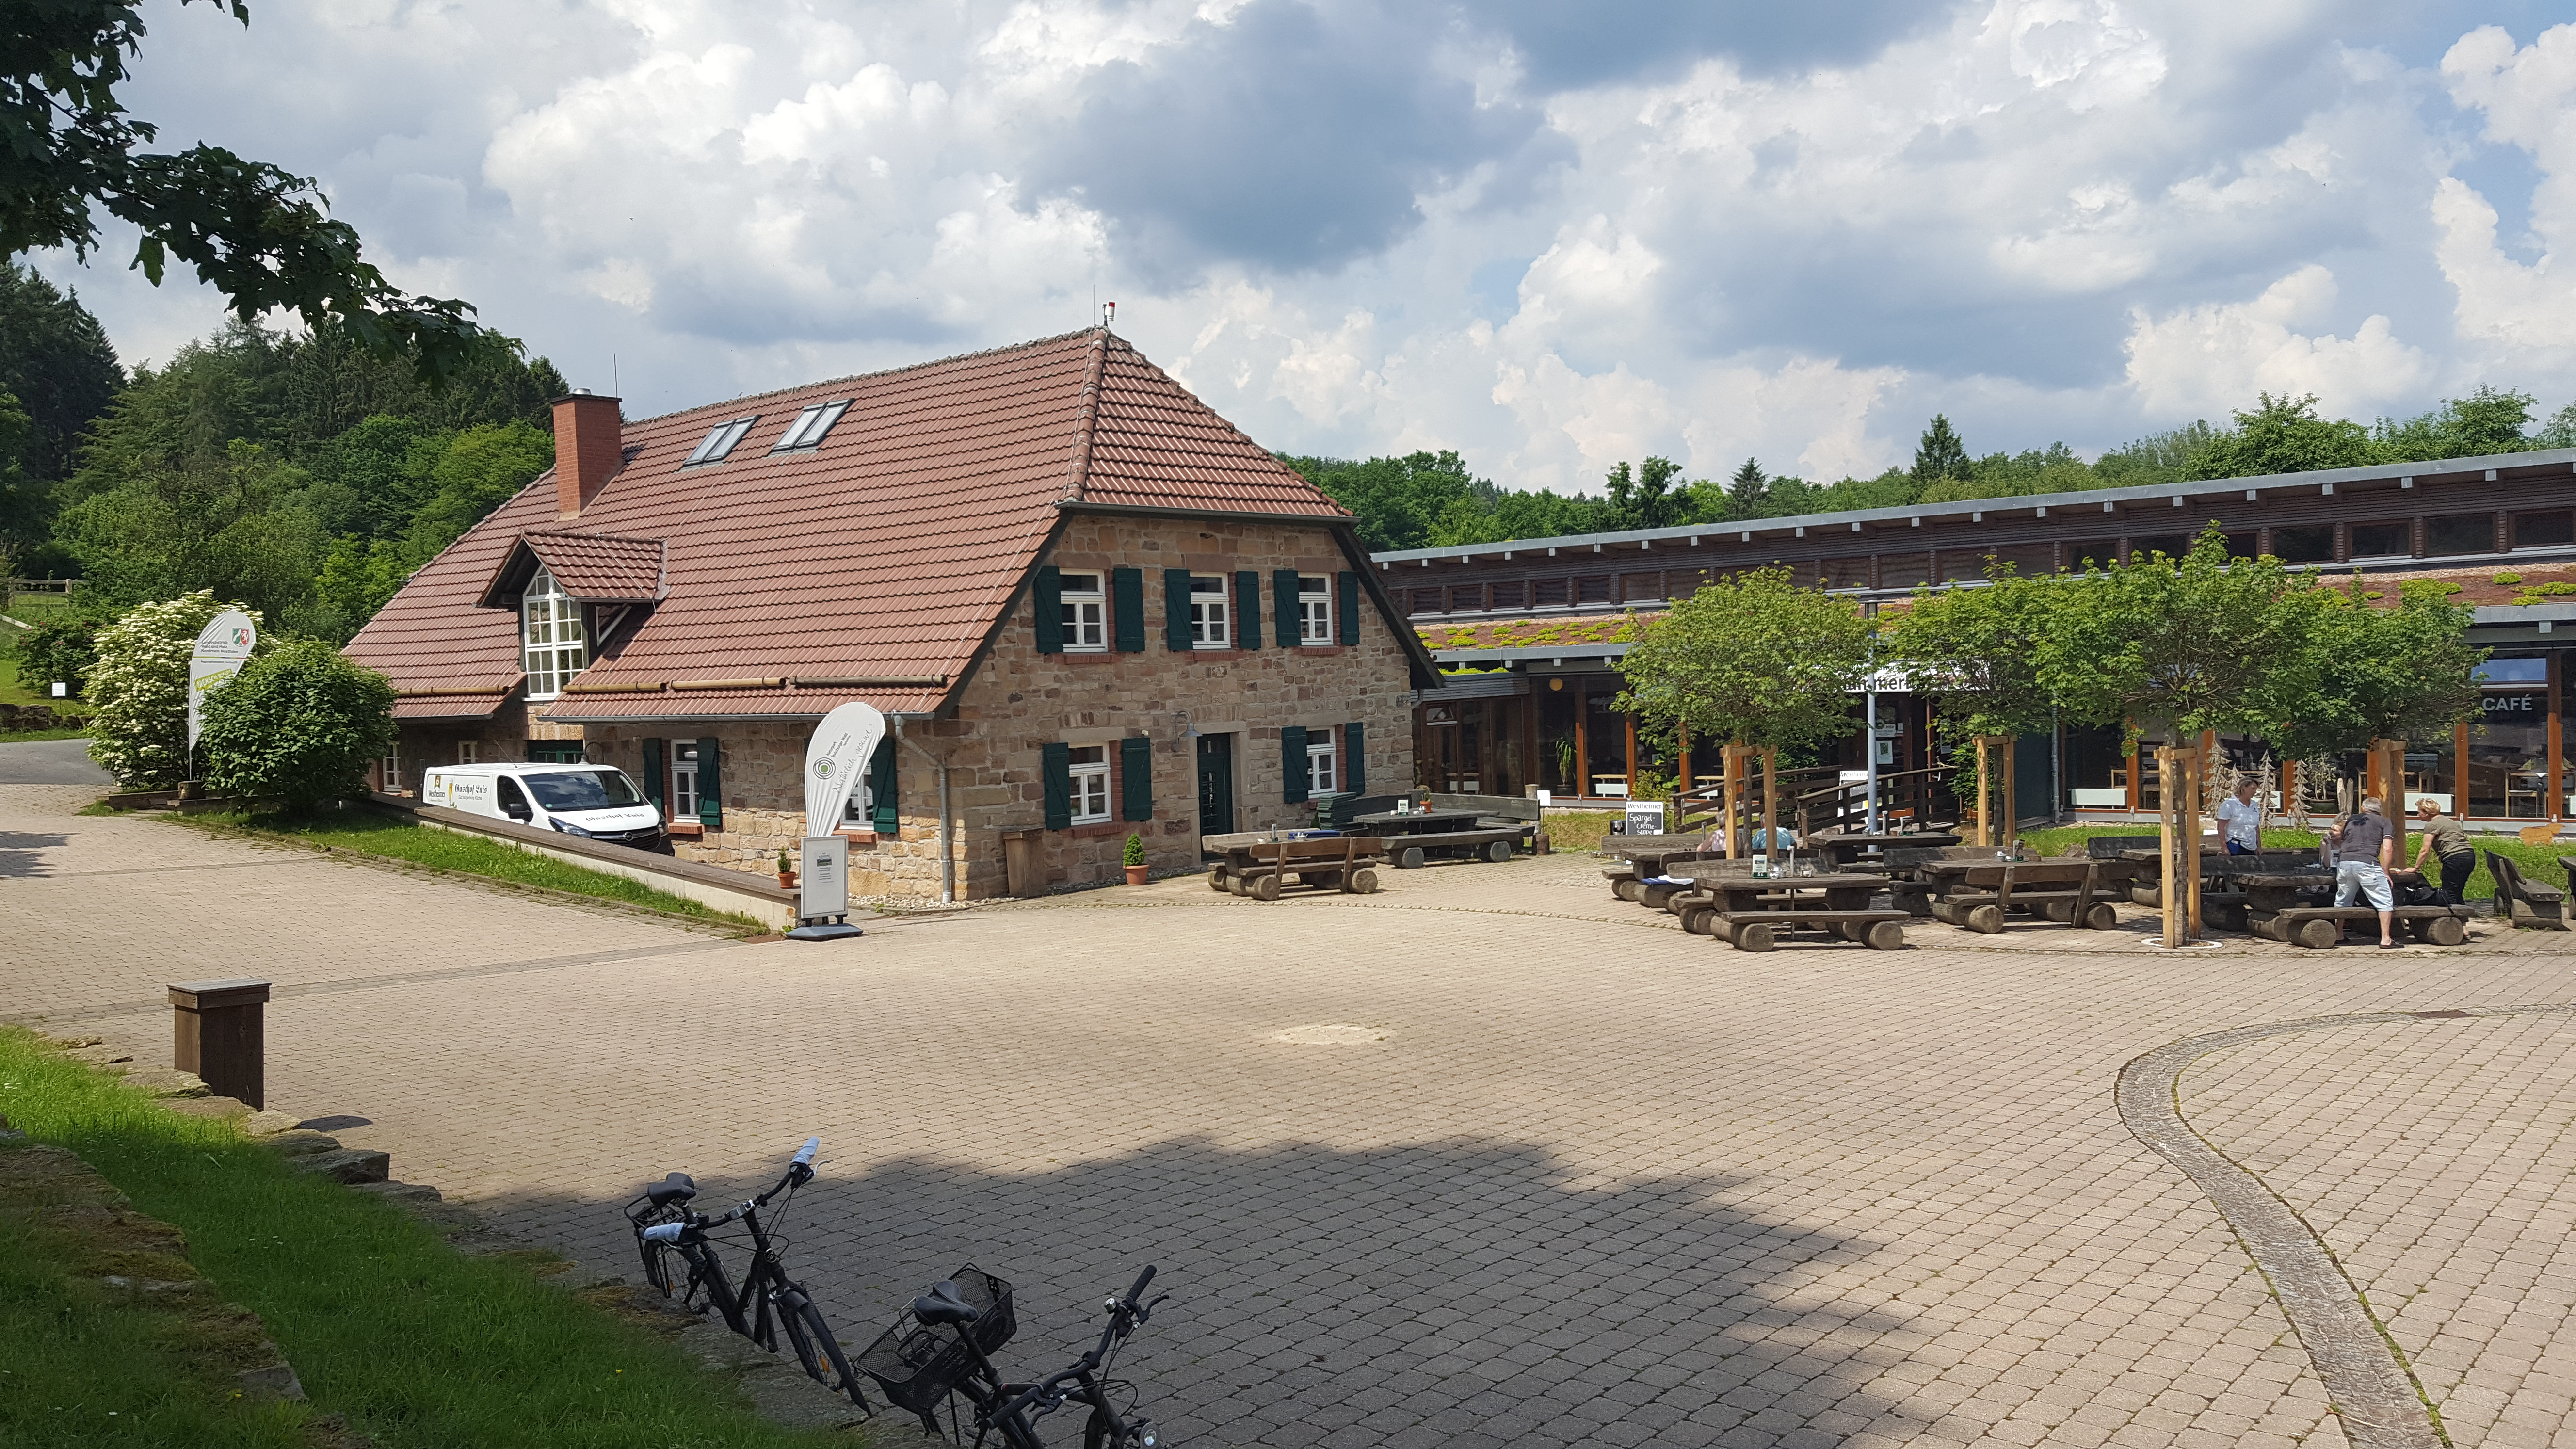 Waldinformationszentrum Hammerhof